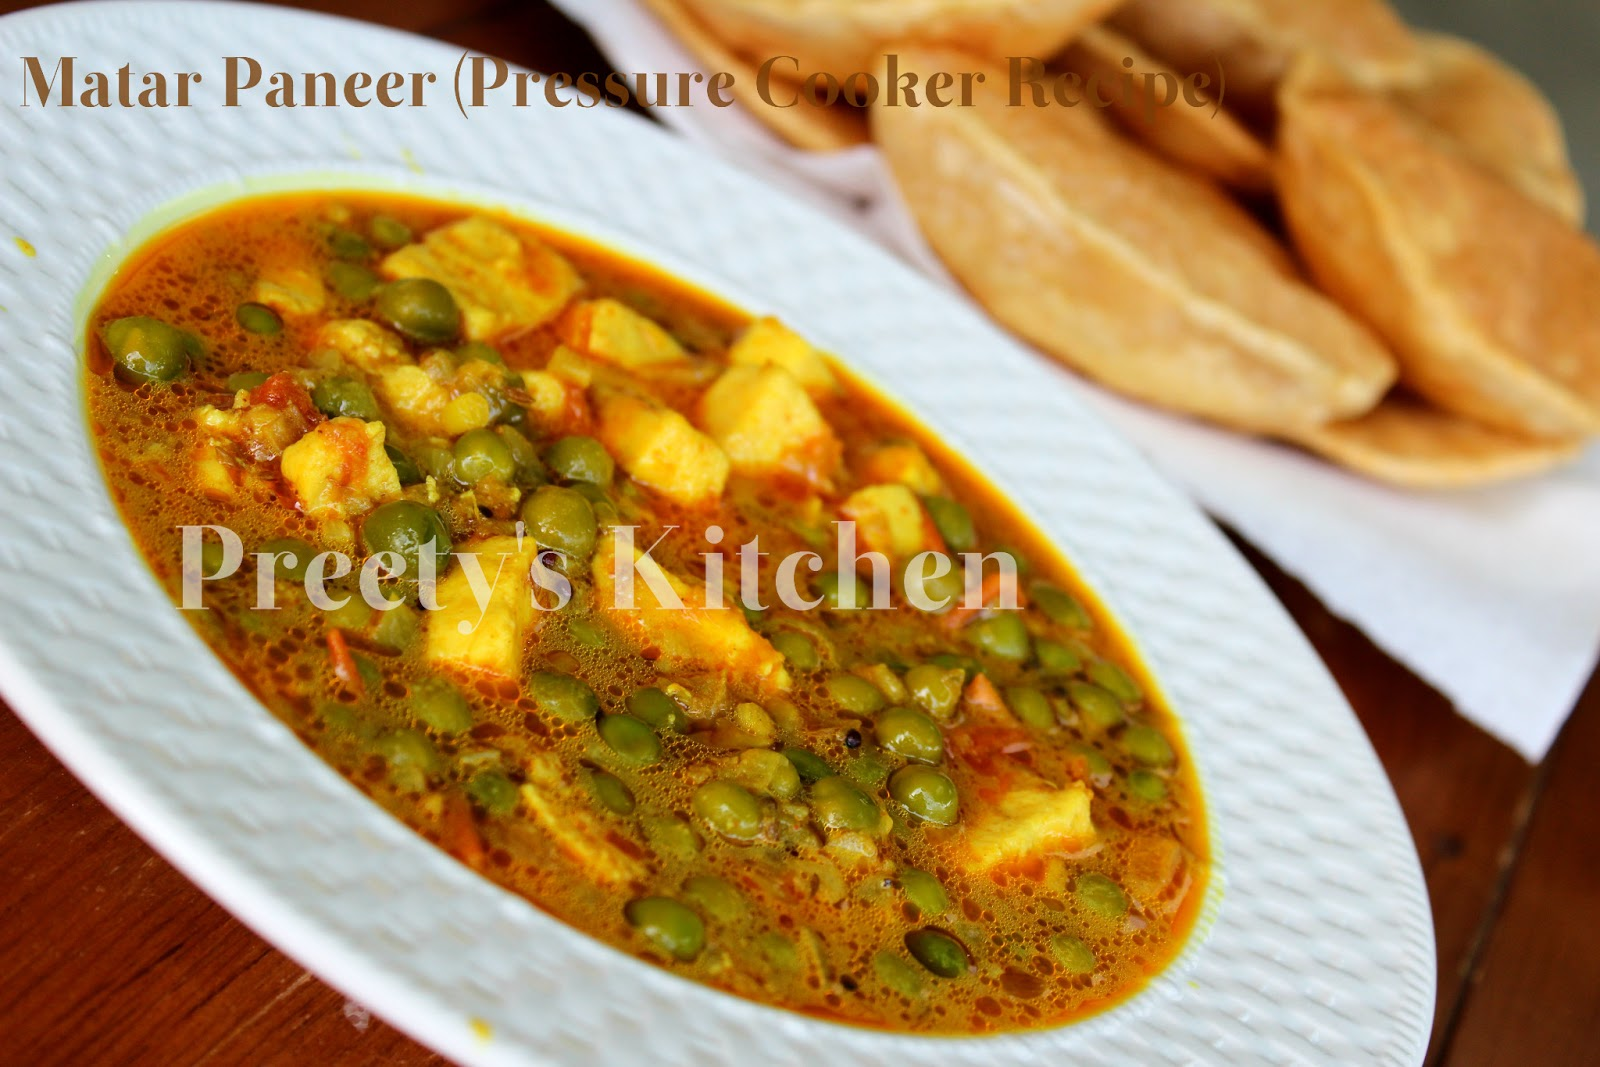 Preetys kitchen matar paneer indian cottage cheese peas curry matar paneer indian cottage cheese peas curry pressure cooker recipe forumfinder Choice Image